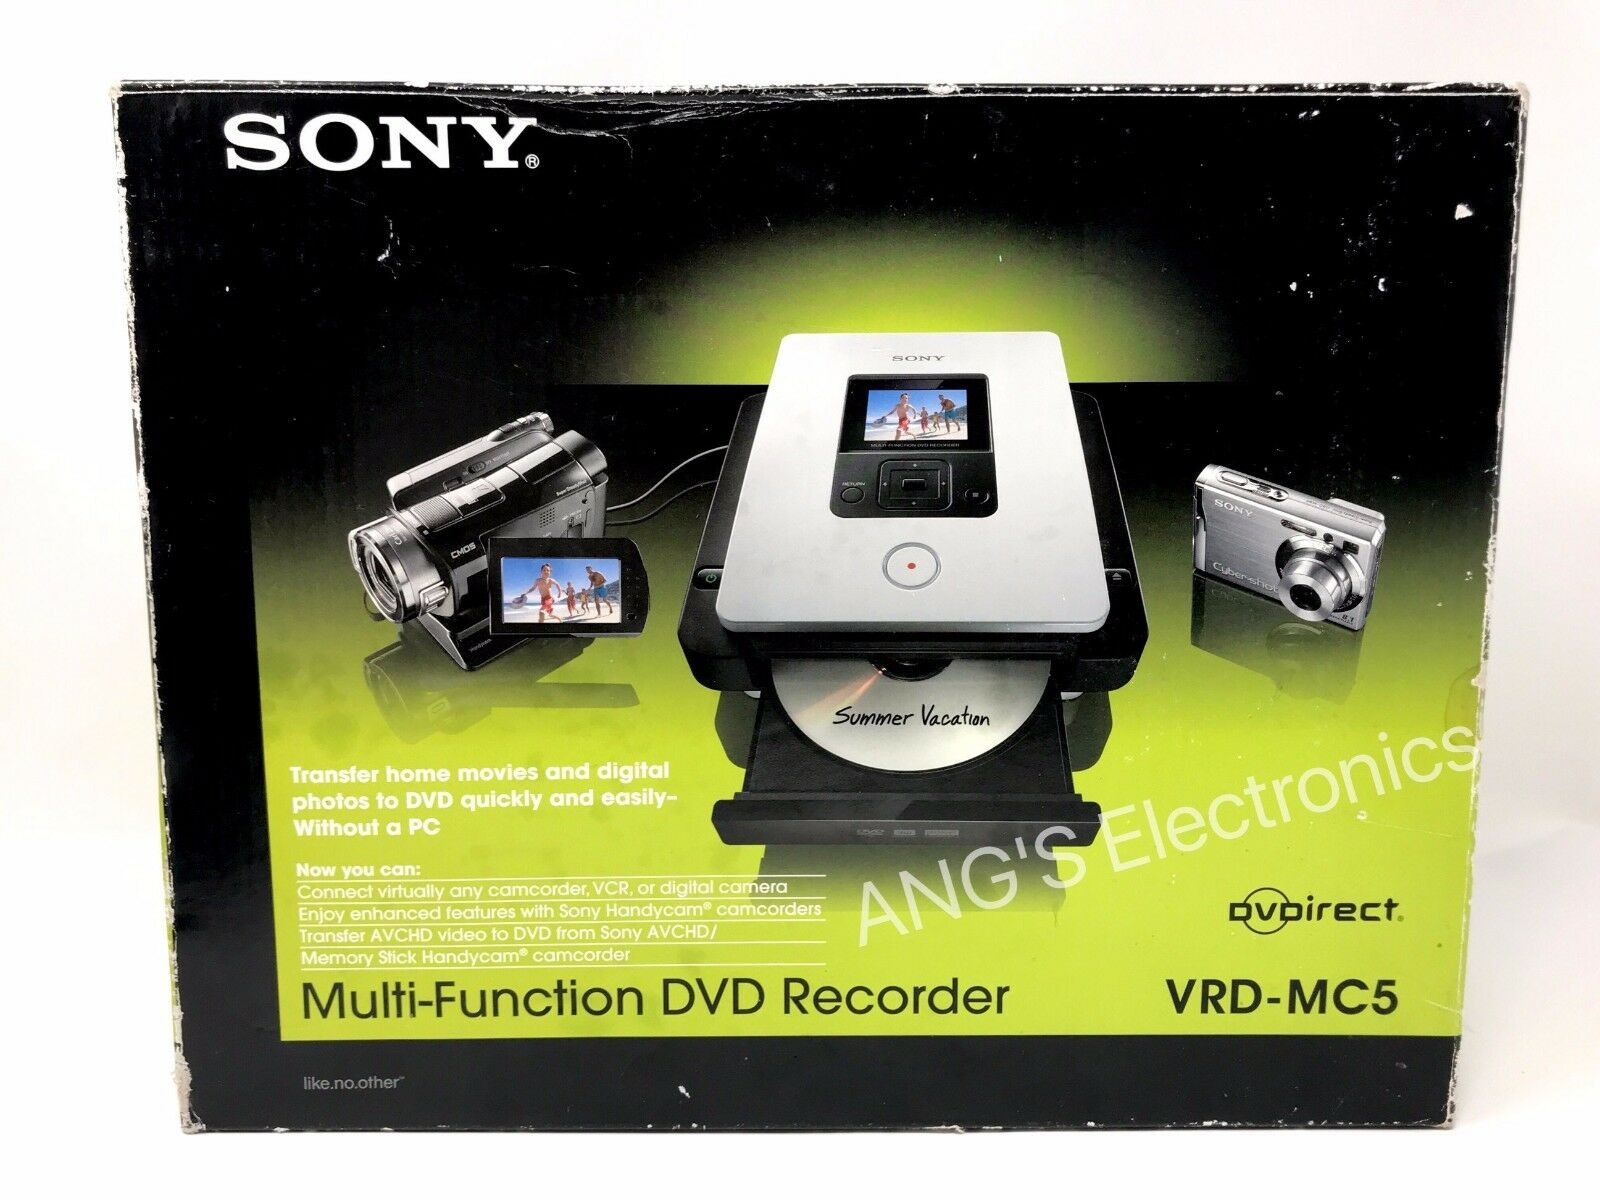 Sony DVDirect VRD-MC5 DVD Recorder (2 5 inch) - Black